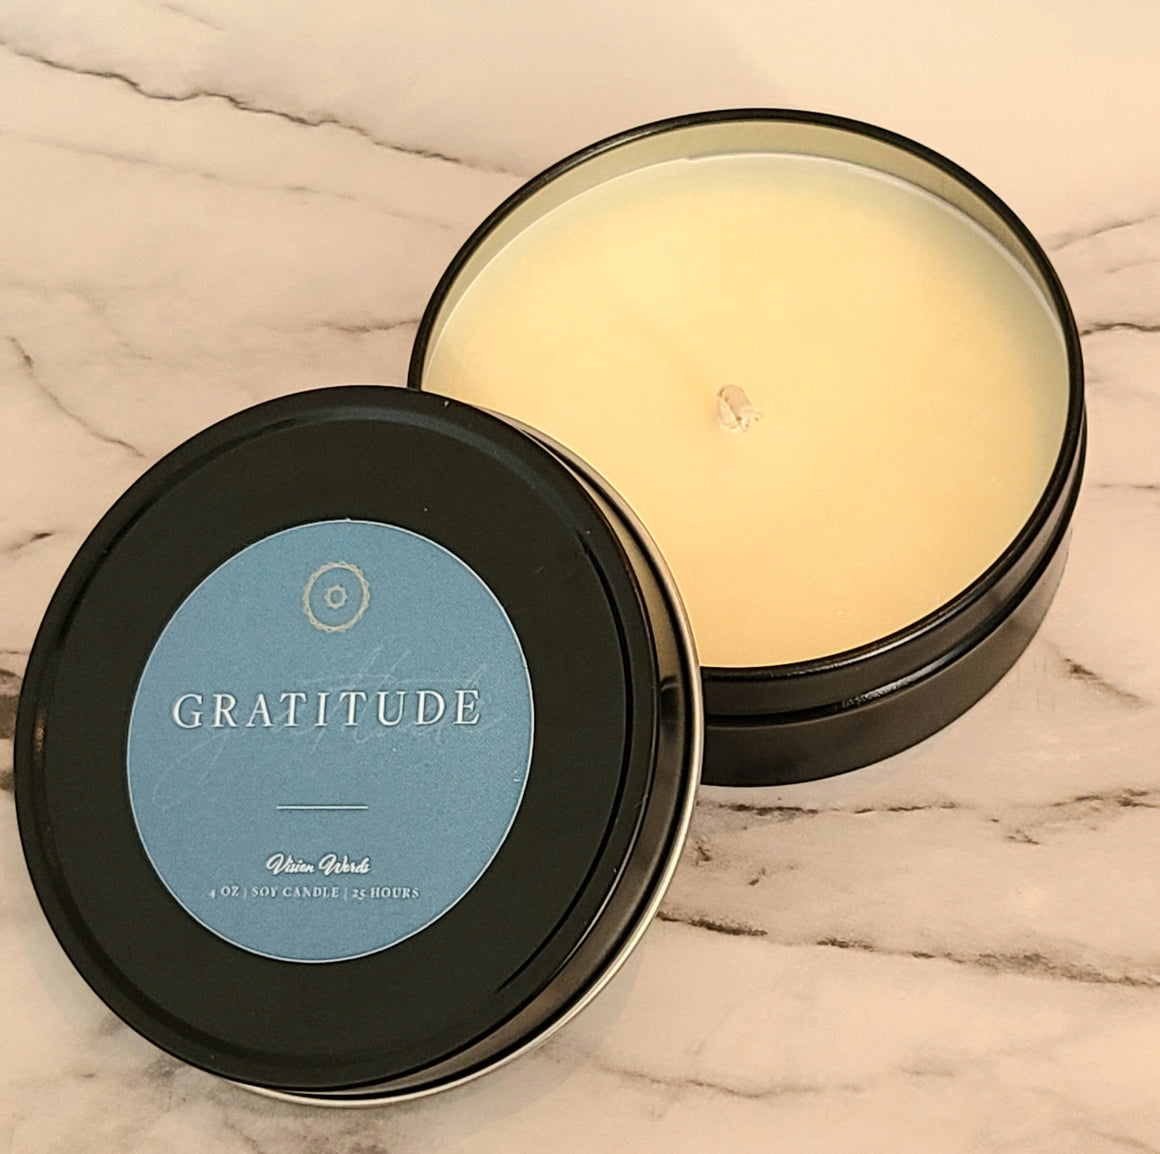 GRATITUDE  4 oz Luxury Soy Candle